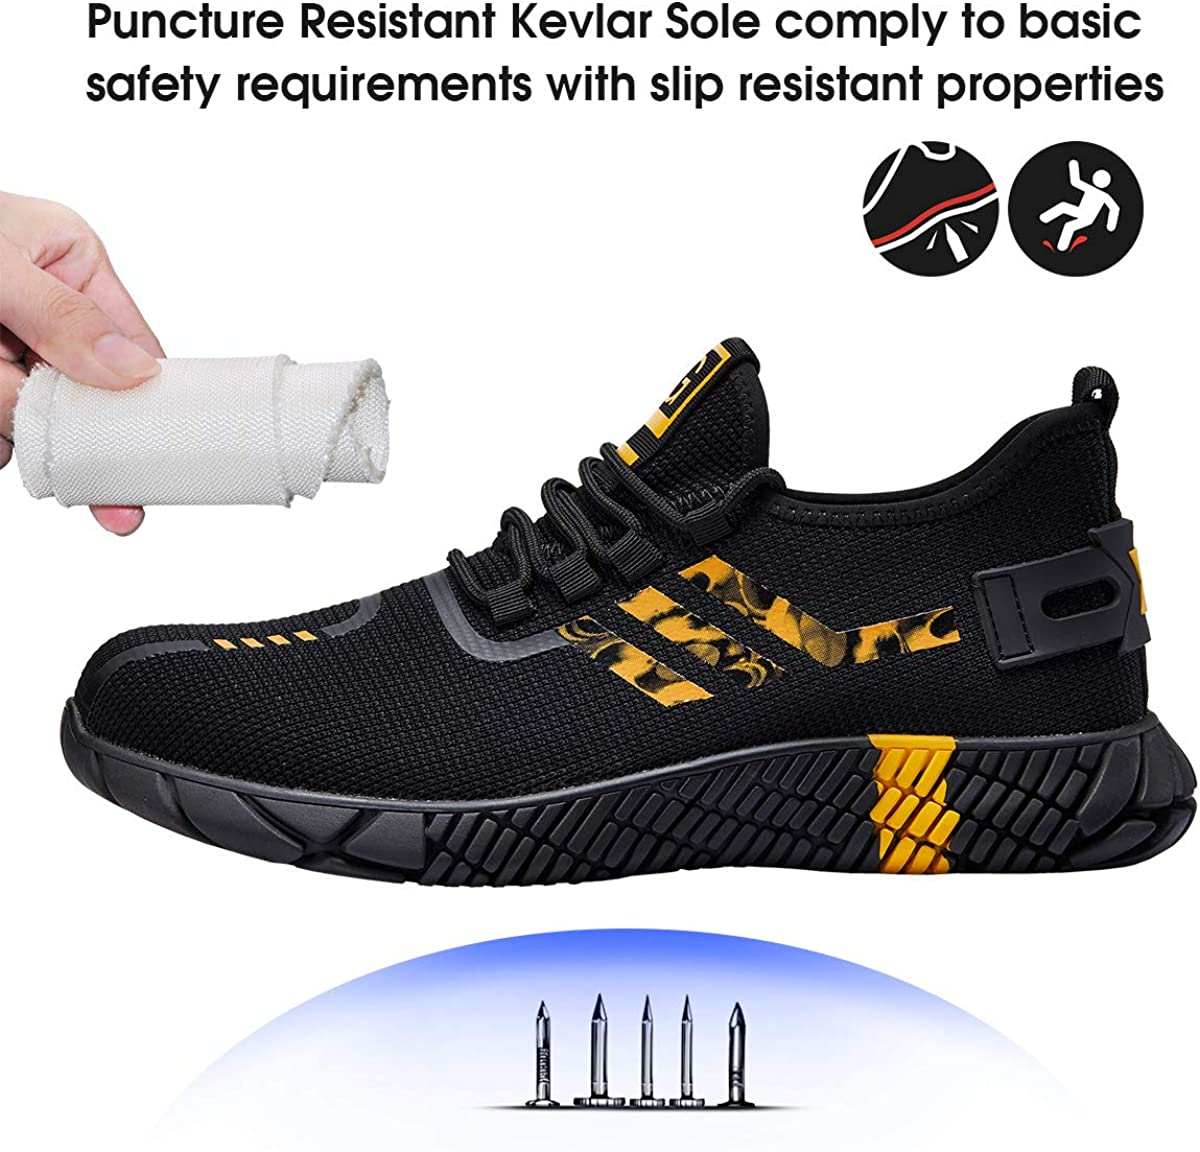 Steel Toe Shoes for Men Women Lightweight Comfortable Safety Work Shoes Slip Resistant Industrial Construction Shoes